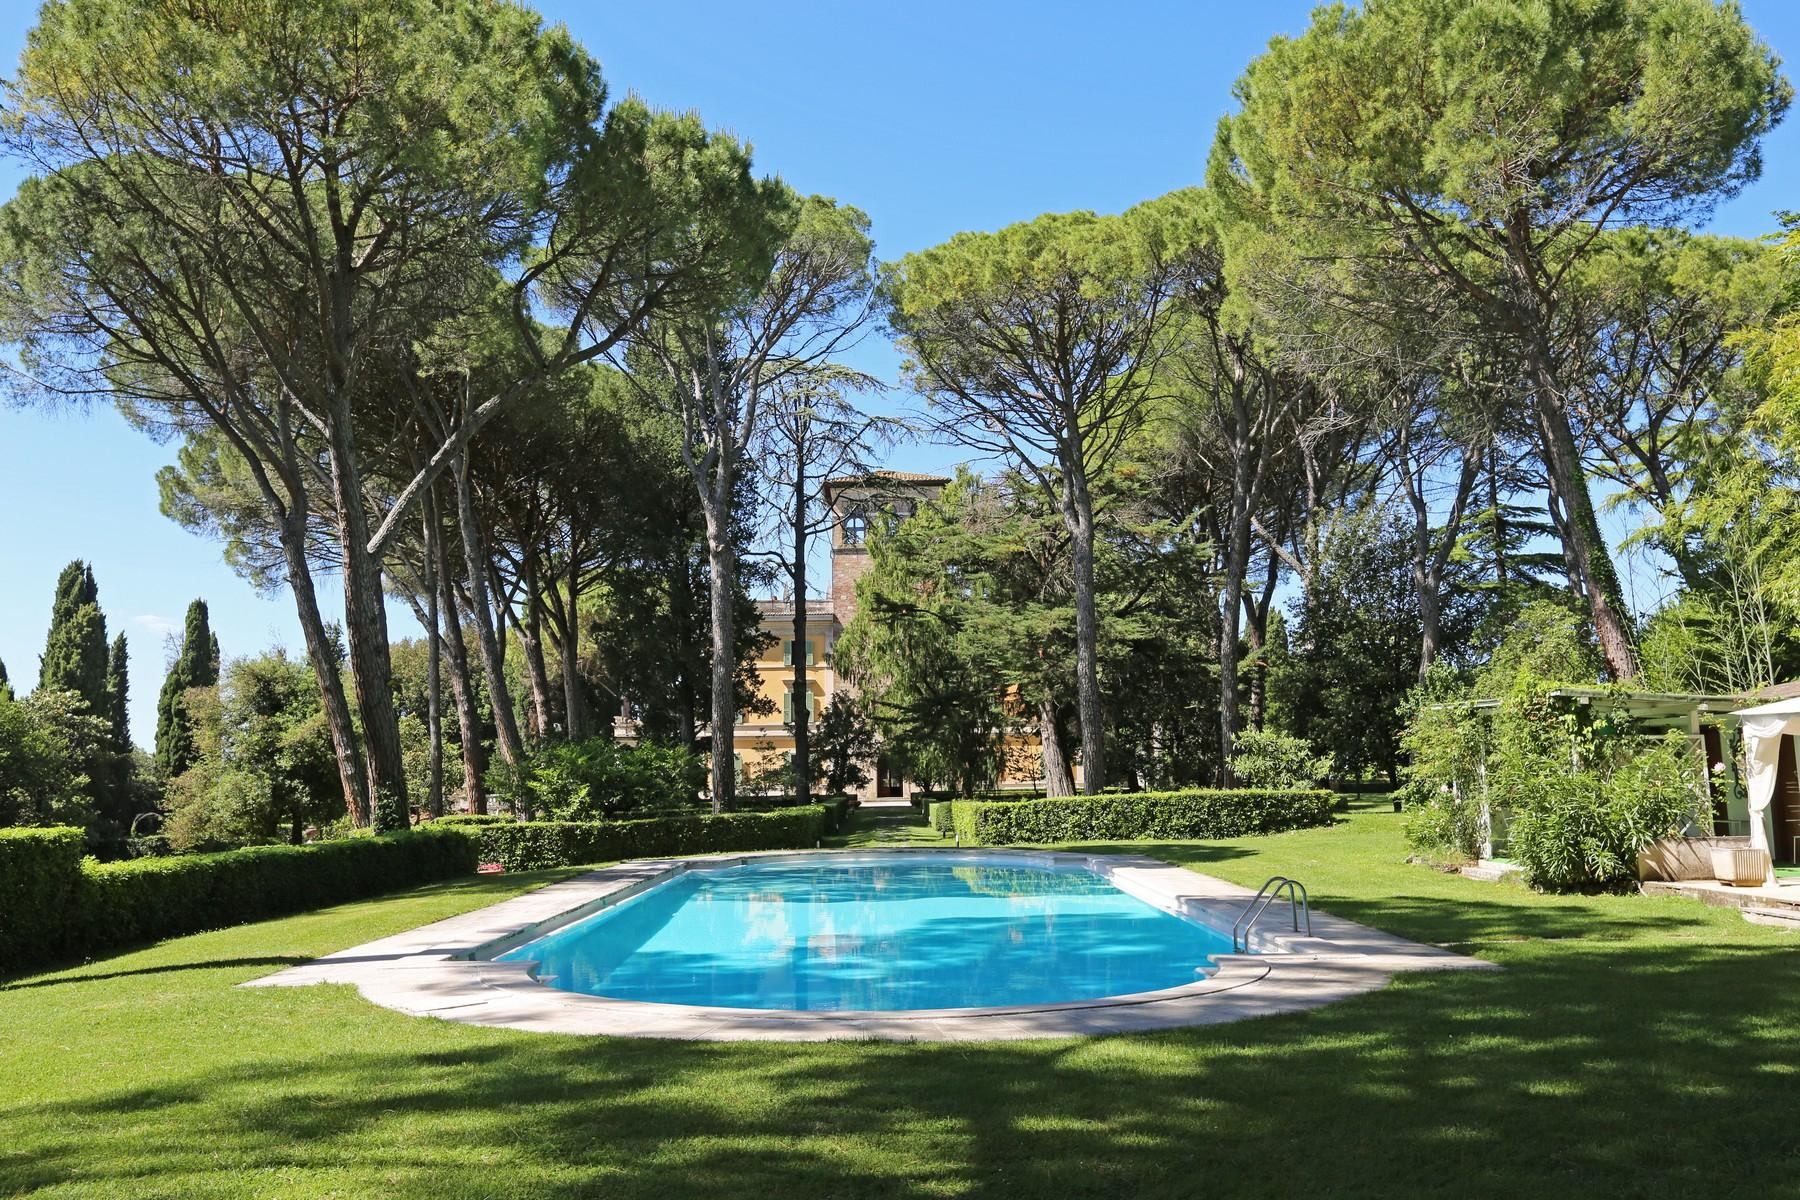 Magnificent historical villa with typical italian garden in Umbria - 26